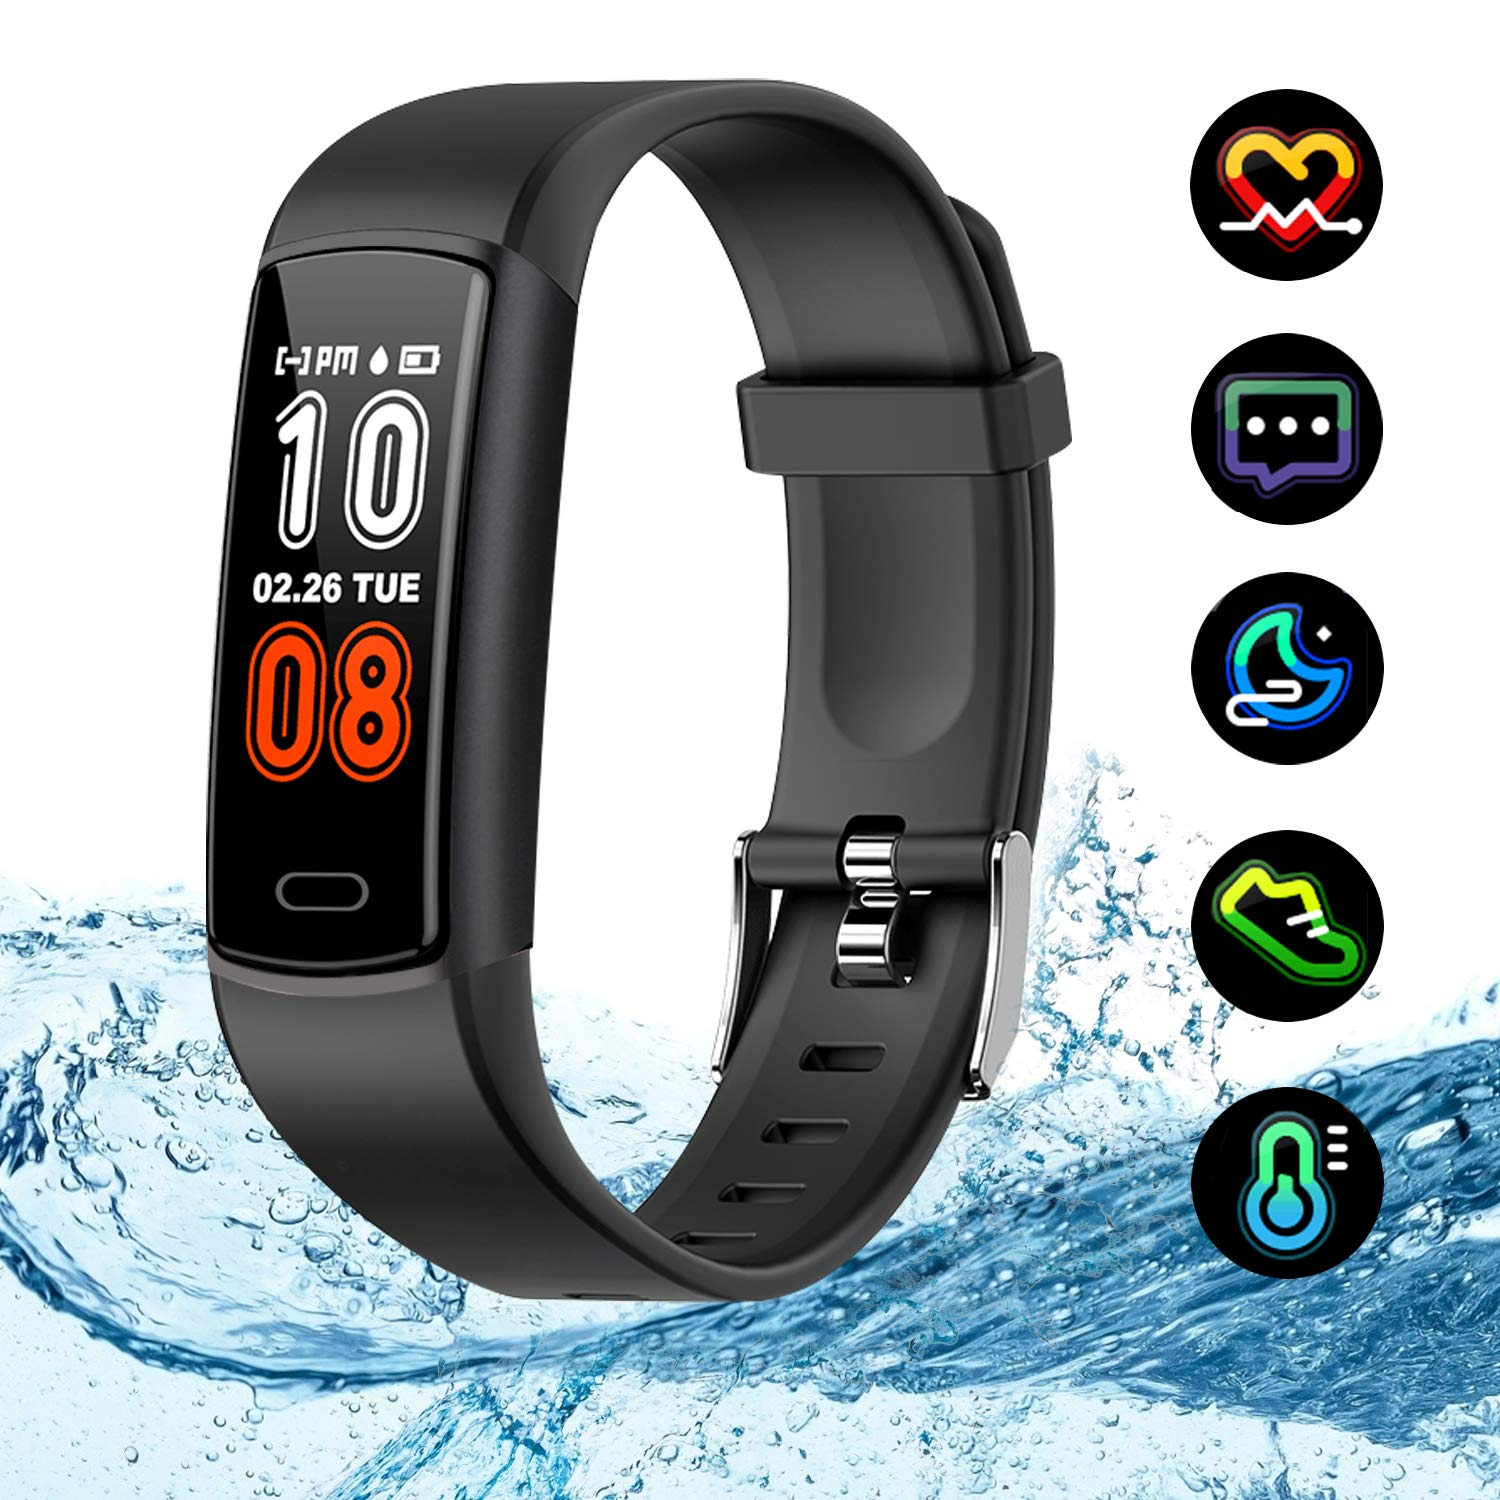 Kirlor Fitness Tracker,Activity Tracker Watch with Heart Rate Blood Pressure Monitor,Waterproof IP68 Colorful Screen Pedometer Calorie Step Counter Sleep Monitor for Android and iPhone